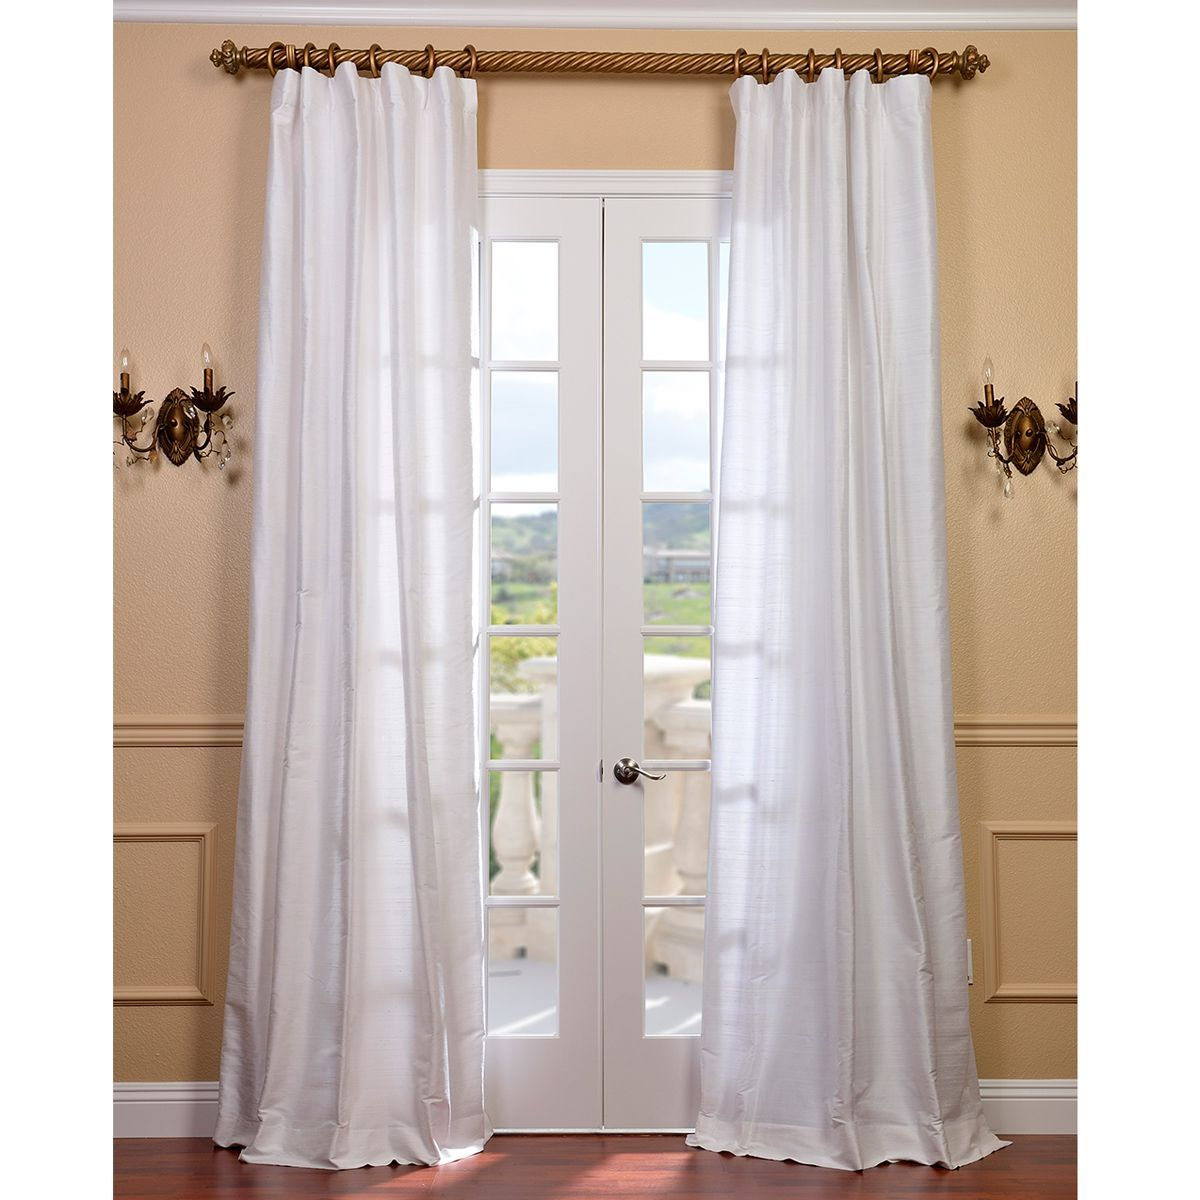 Exclusive Fabrics Signature Lily White Textured Silk Curtain Pertaining To Ice White Vintage Faux Textured Silk Curtain Panels (View 9 of 20)